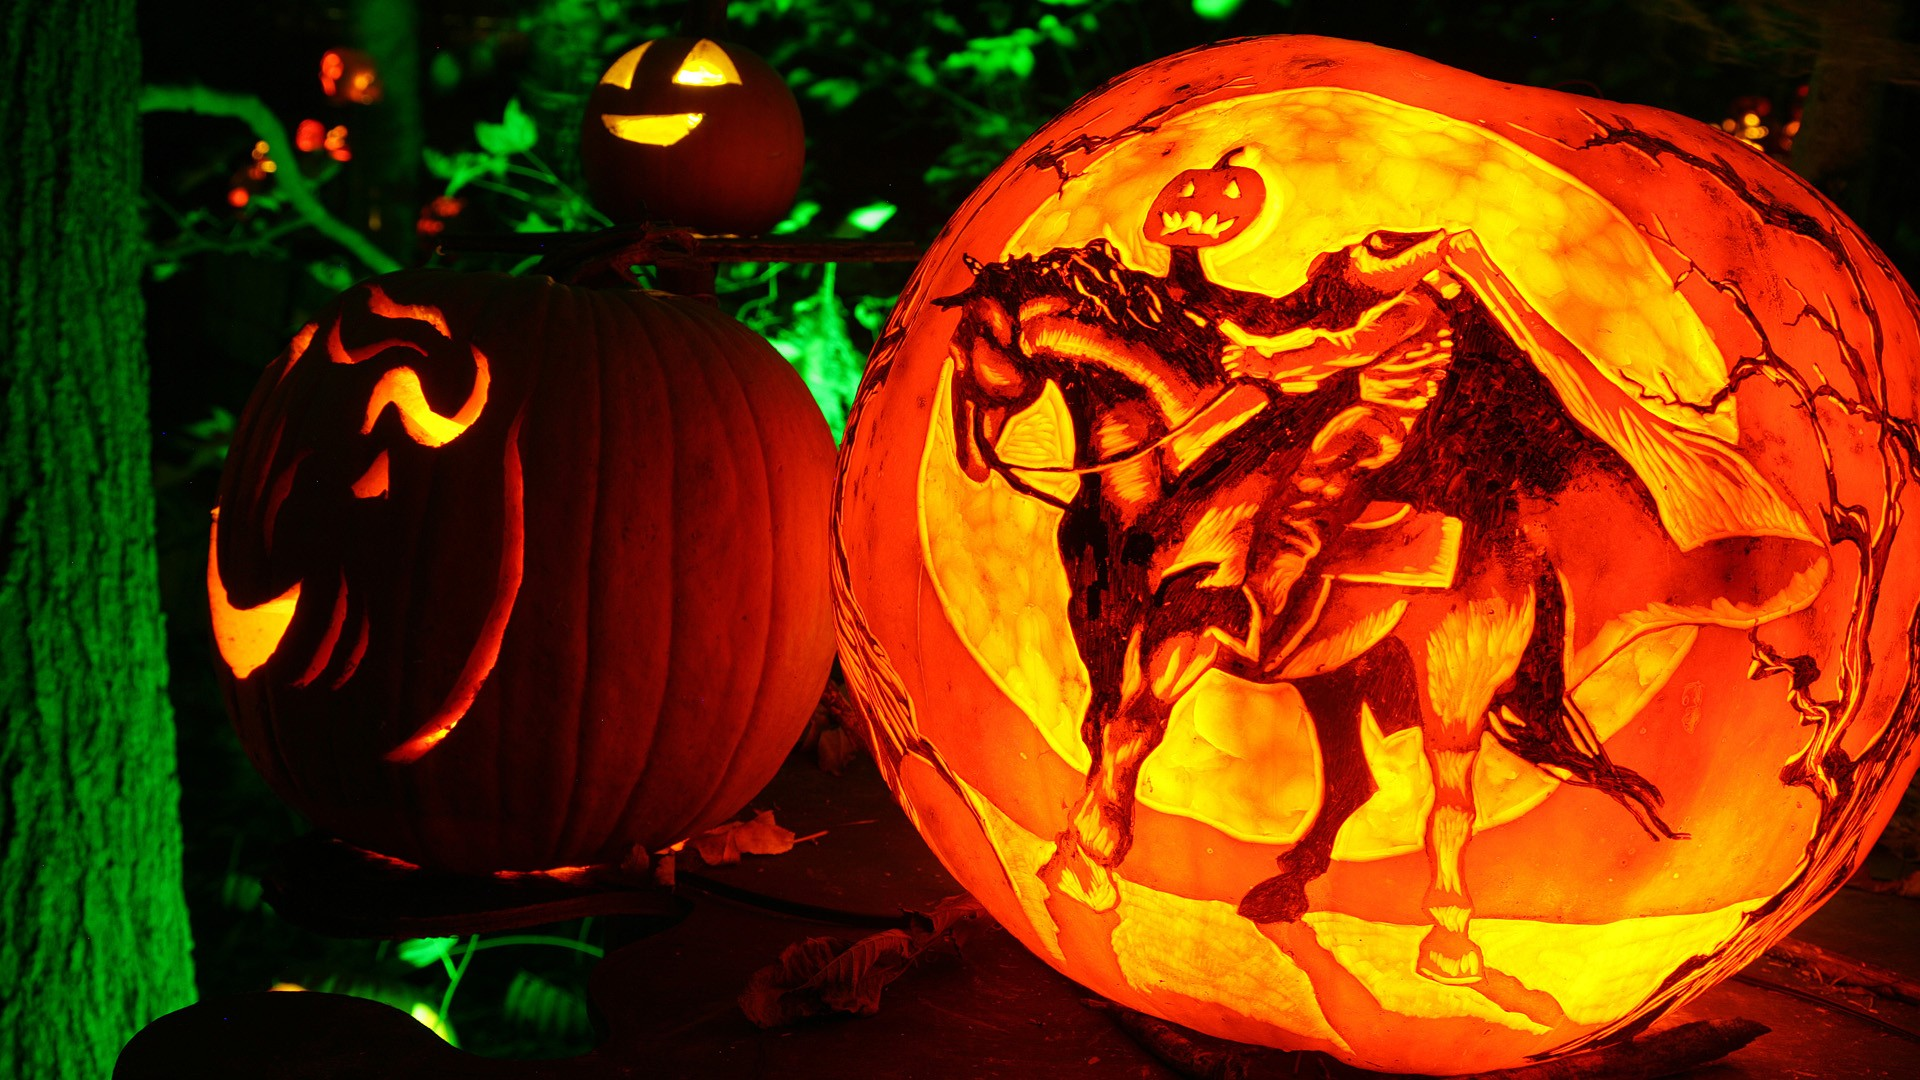 Desktop Halloween Jack O Lantern Hd 1957322 Hd Wallpaper